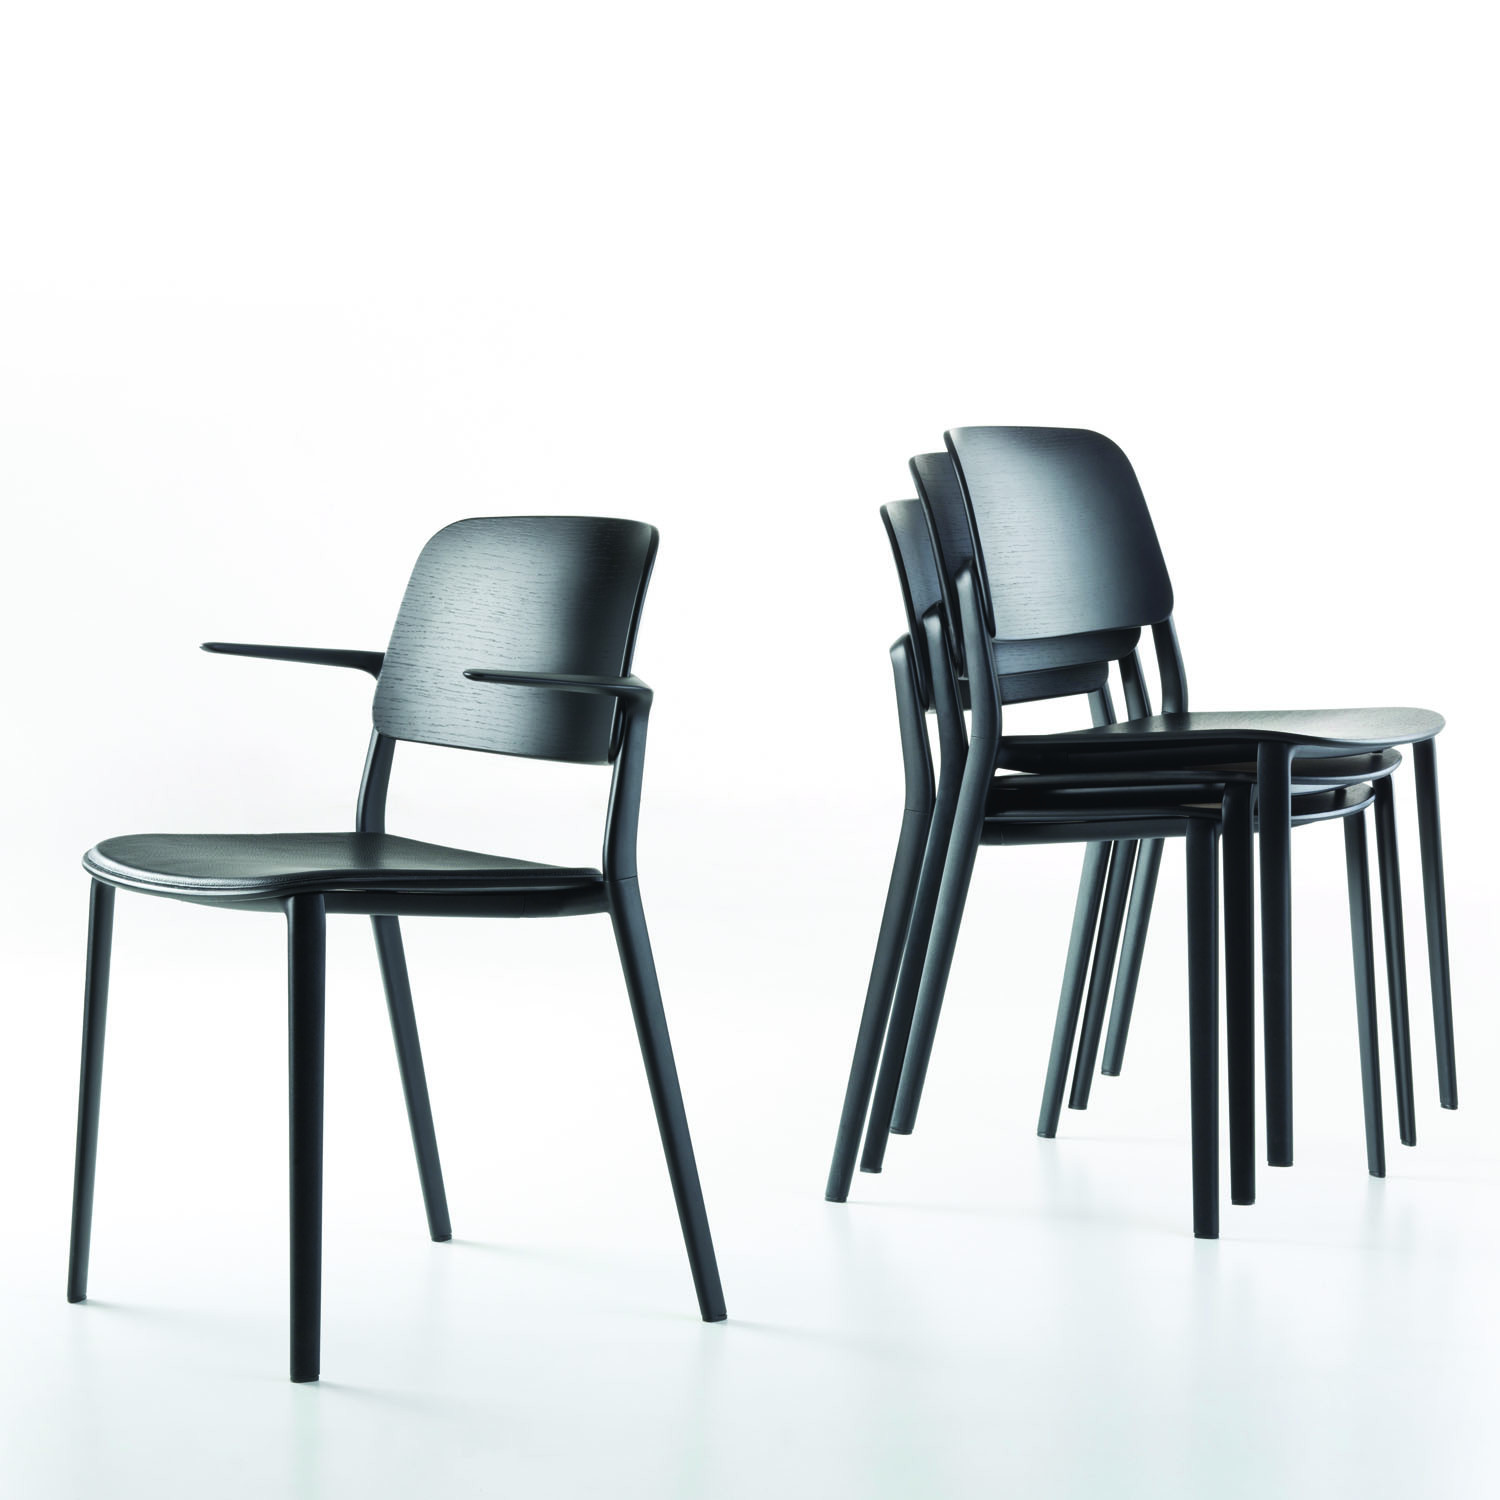 Balck Appia Stacking Chairs